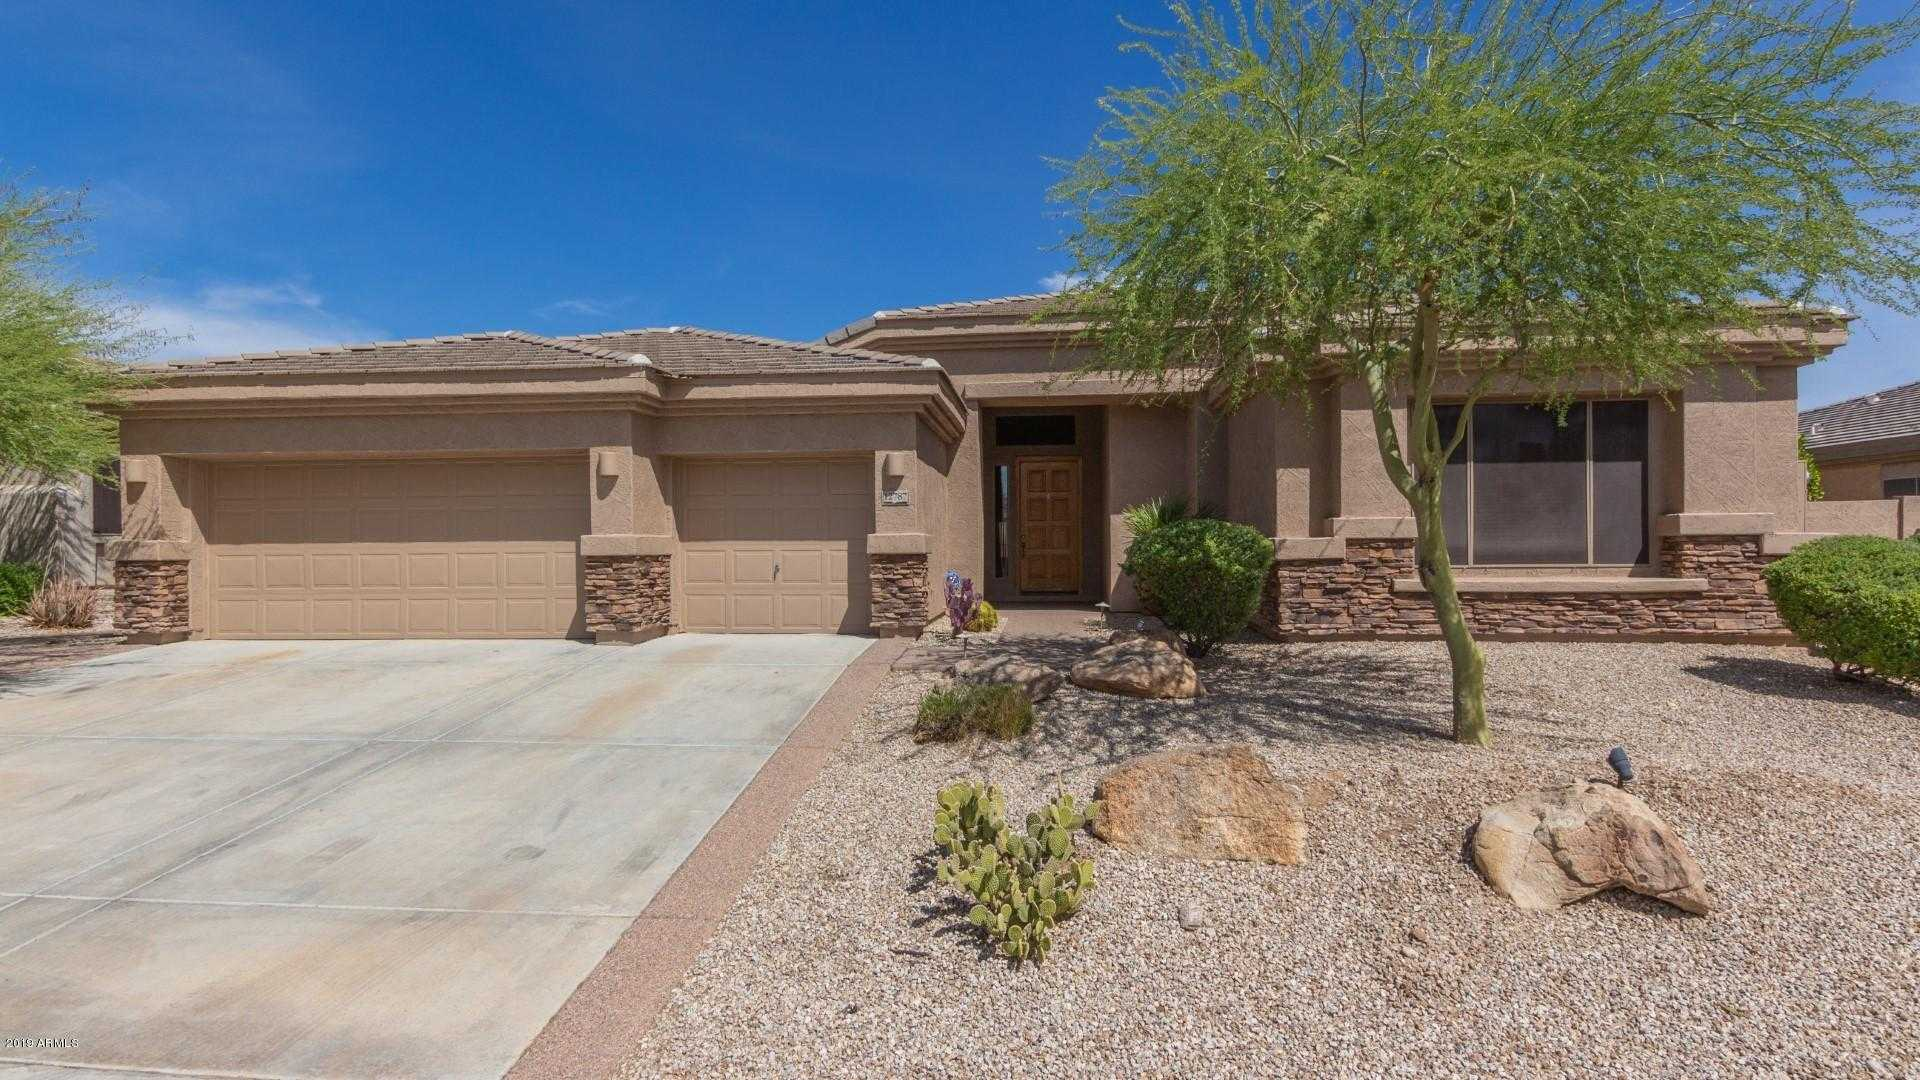 $525,000 - 5Br/4Ba - Home for Sale in Estrella Mountain Ranch Parcel 91, Goodyear